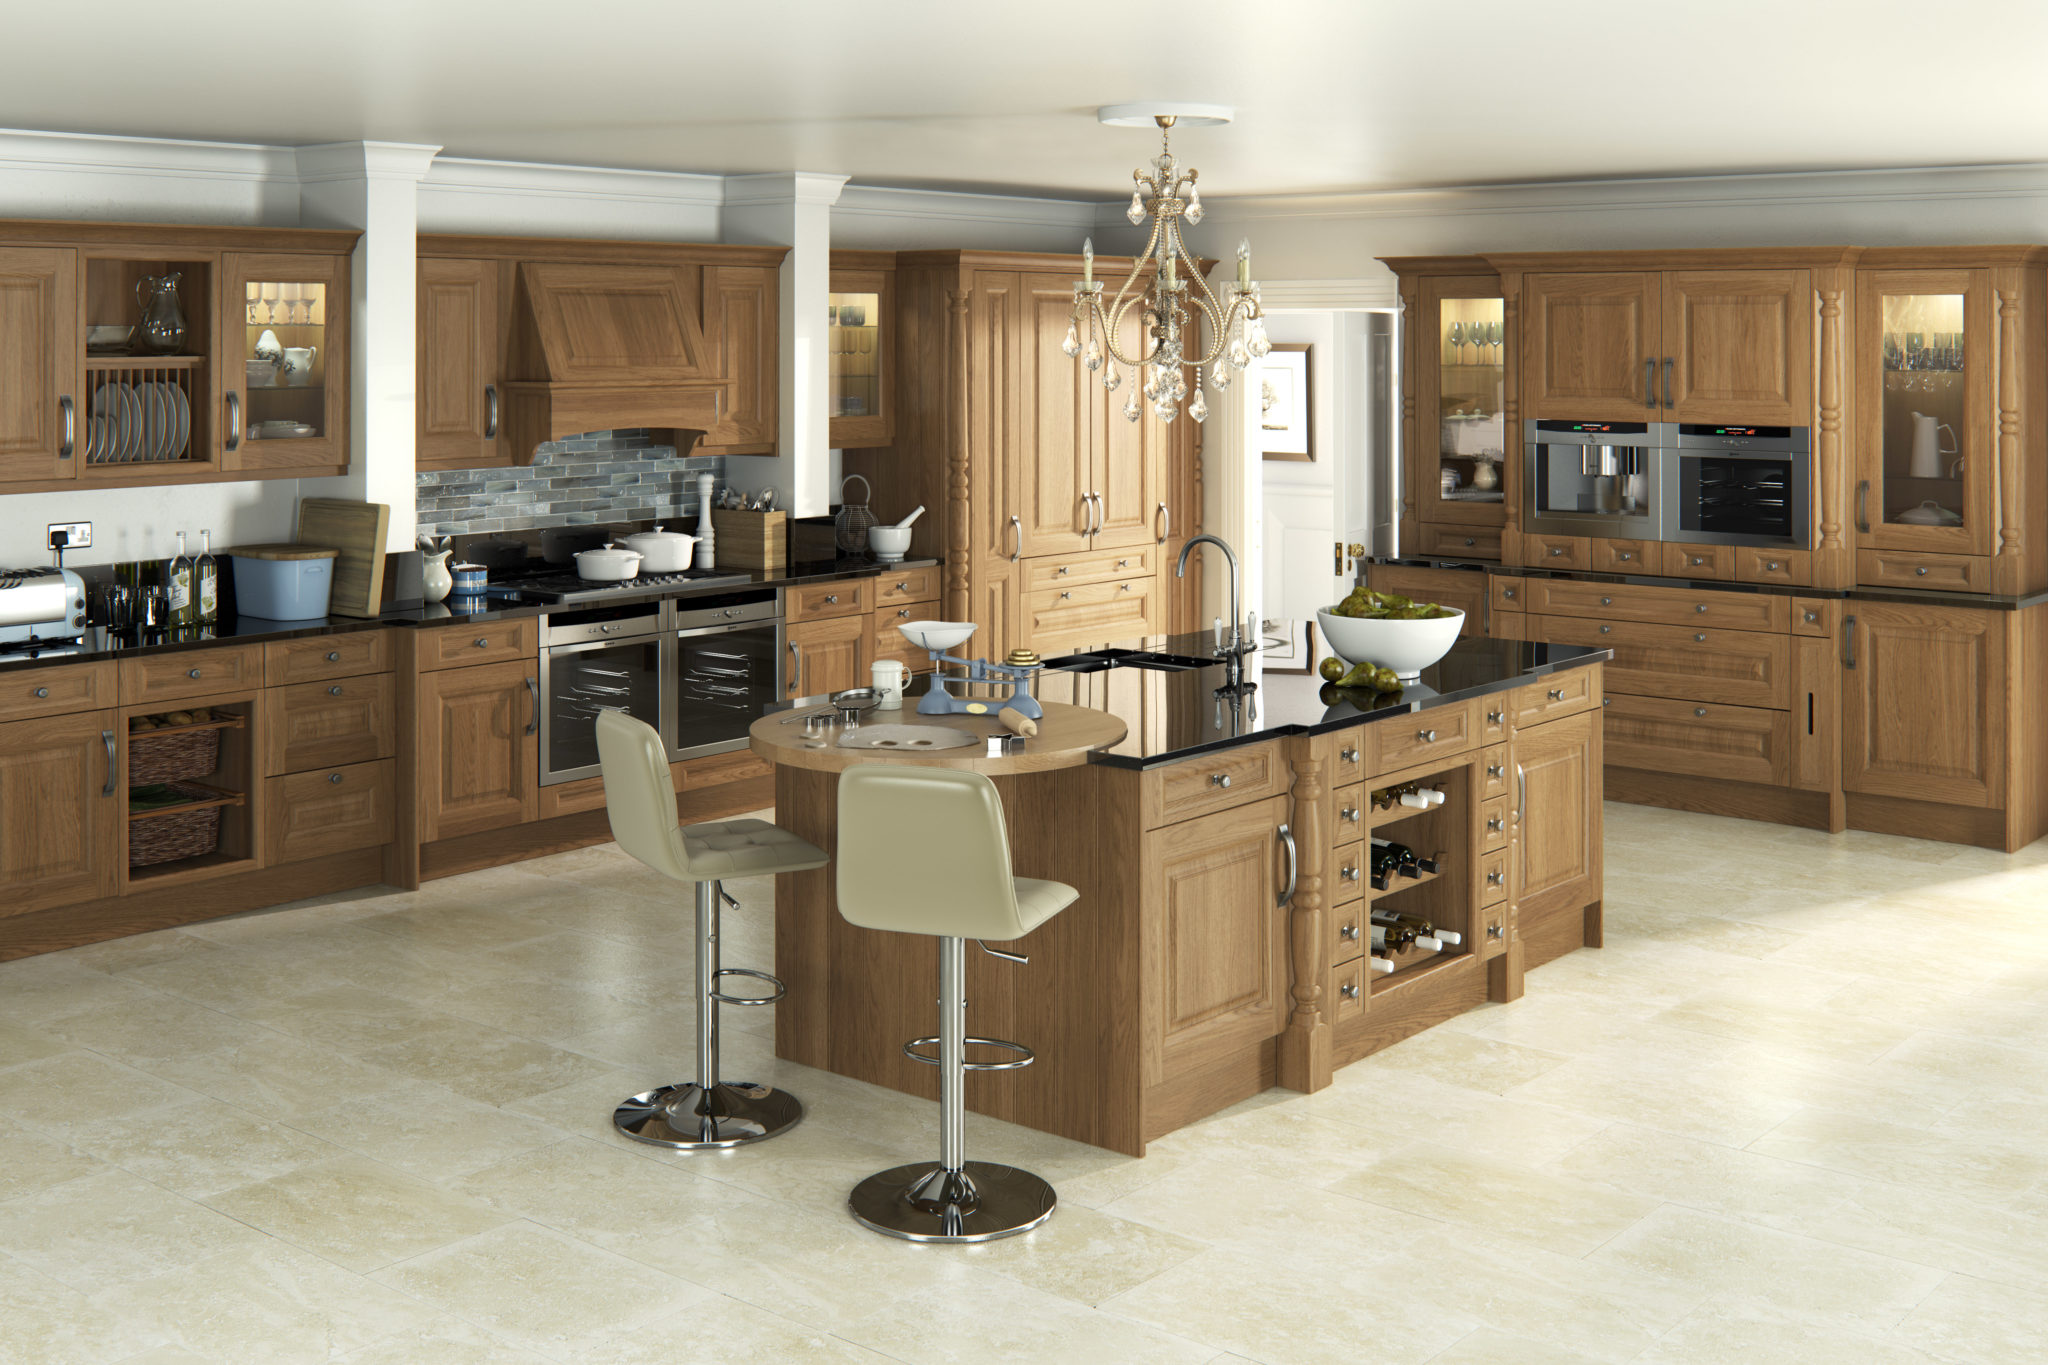 Traditional kitchen design oak kitchens traditional for Traditional kitchen